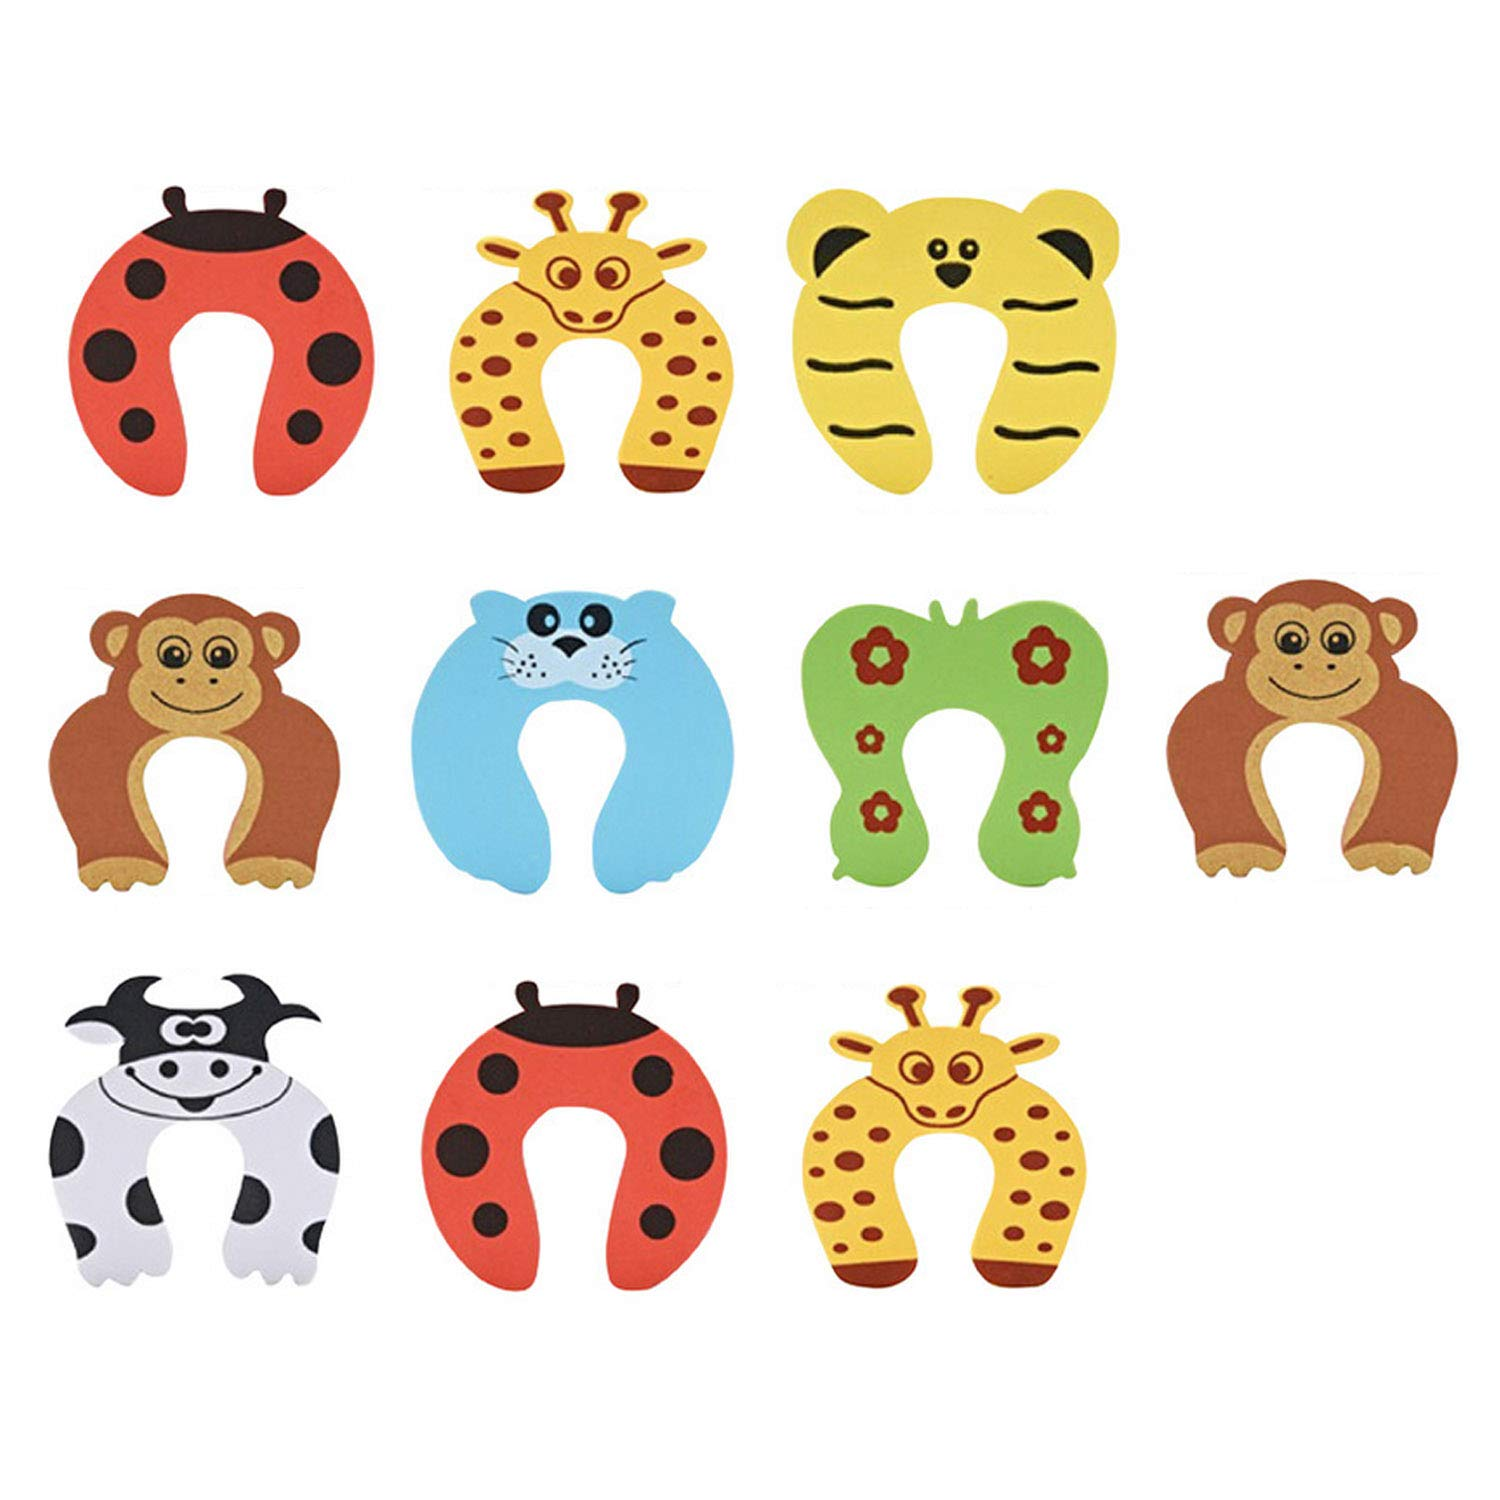 10pcs Cute Funny Cartoon Animal EVA Doorstop Door Stop Stopper Cushion for Baby Children Safety Finger Protection Random Style Migavan